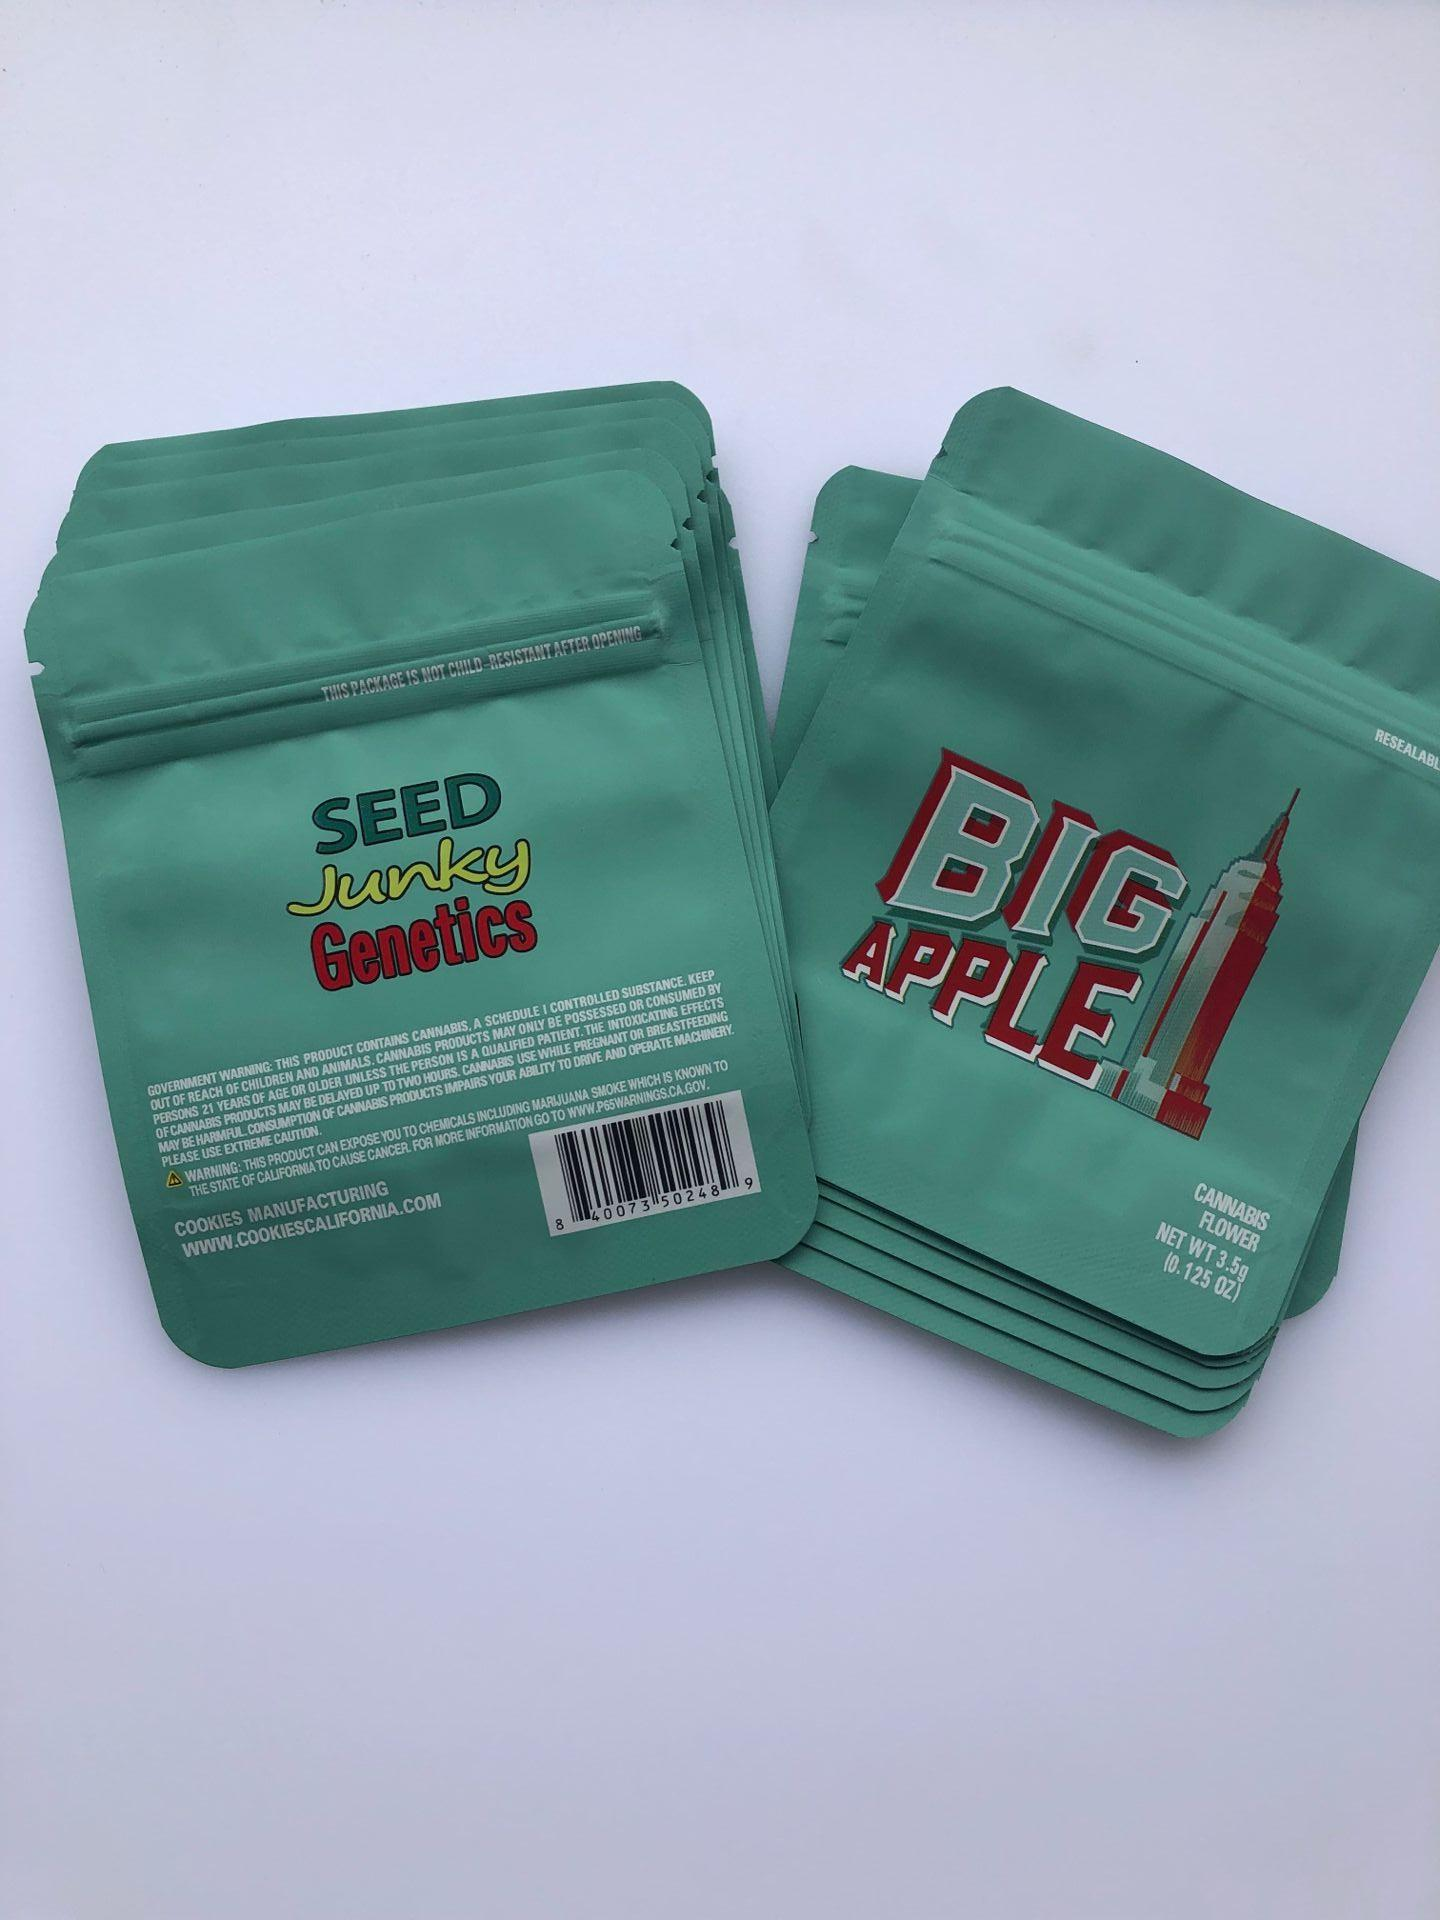 Bags Medicated Cookies Packaging Mint Edibles Local Mylar Edibles Bags Big Apple bbyMP yh_pack